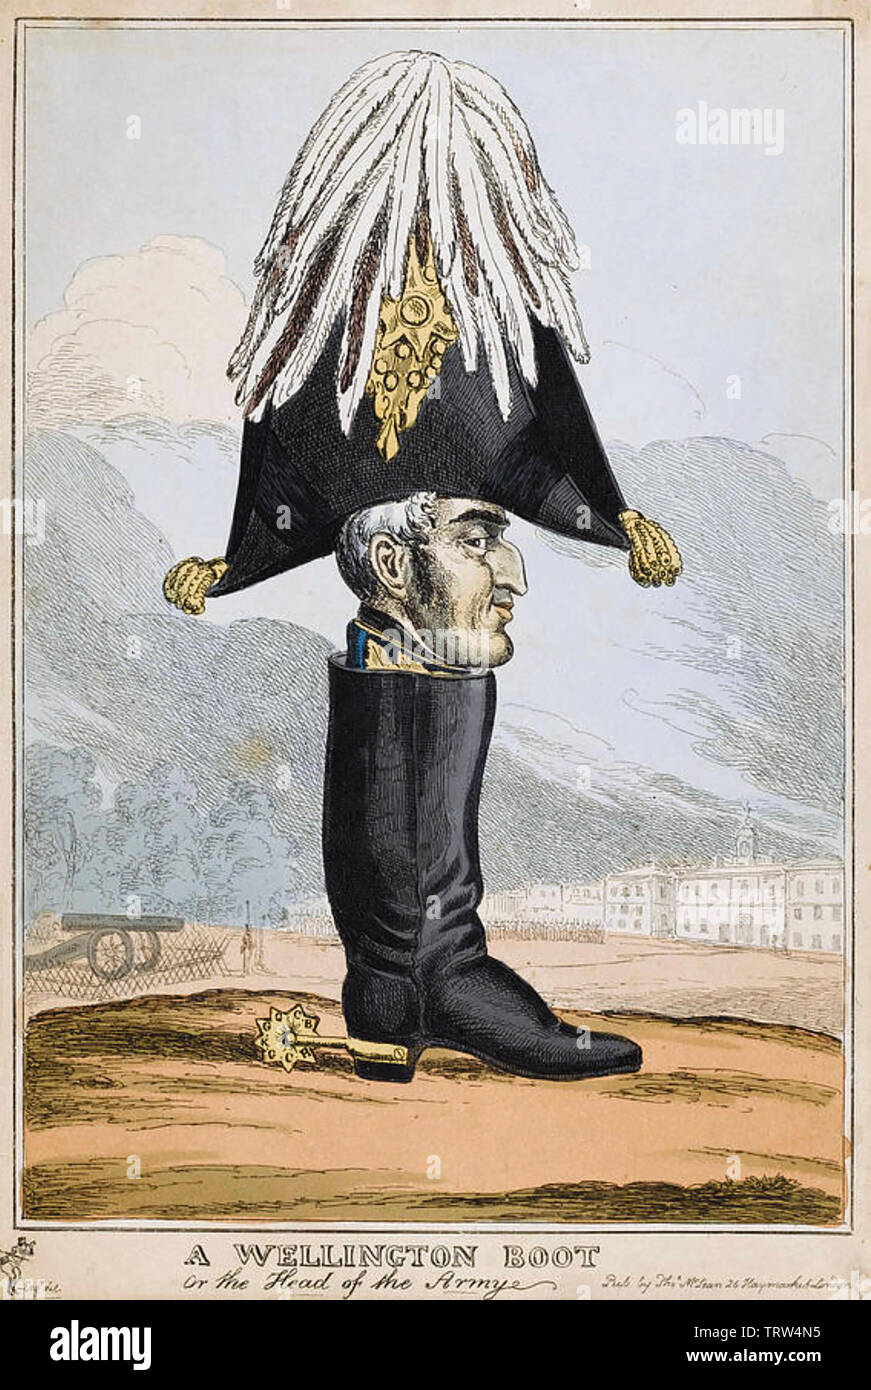 WELLINGTON BOOT CARTOON 1827 showing the Duke of Wellington as head of the British army with Horse Guards Parade at bottom left - Stock Image